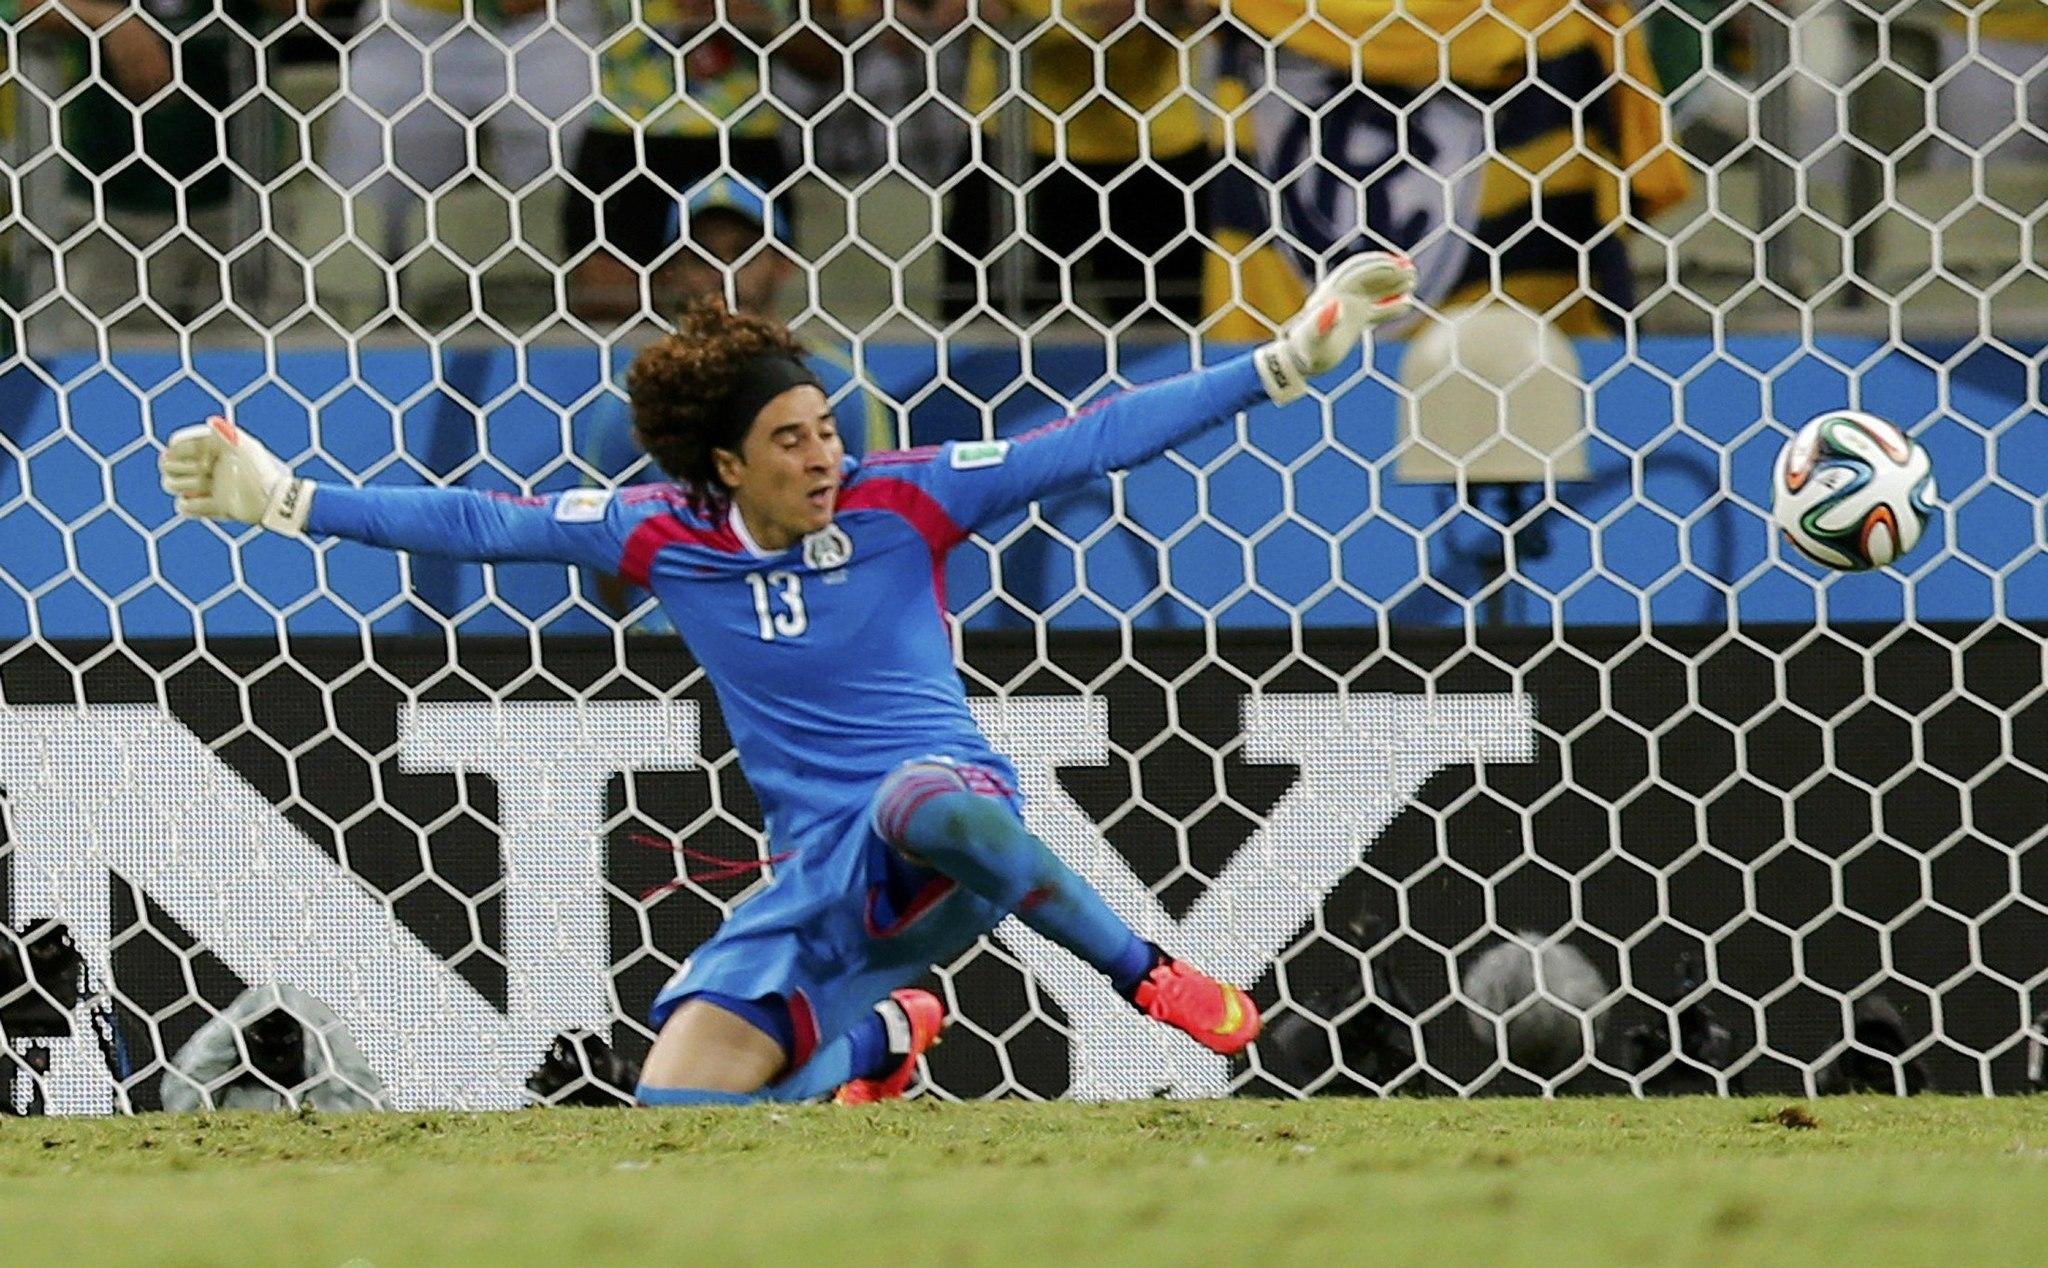 Mexico's goalkeeper Guillermo Ochoa makes a save during the 2014 World Cup Group A soccer match against Brazil.